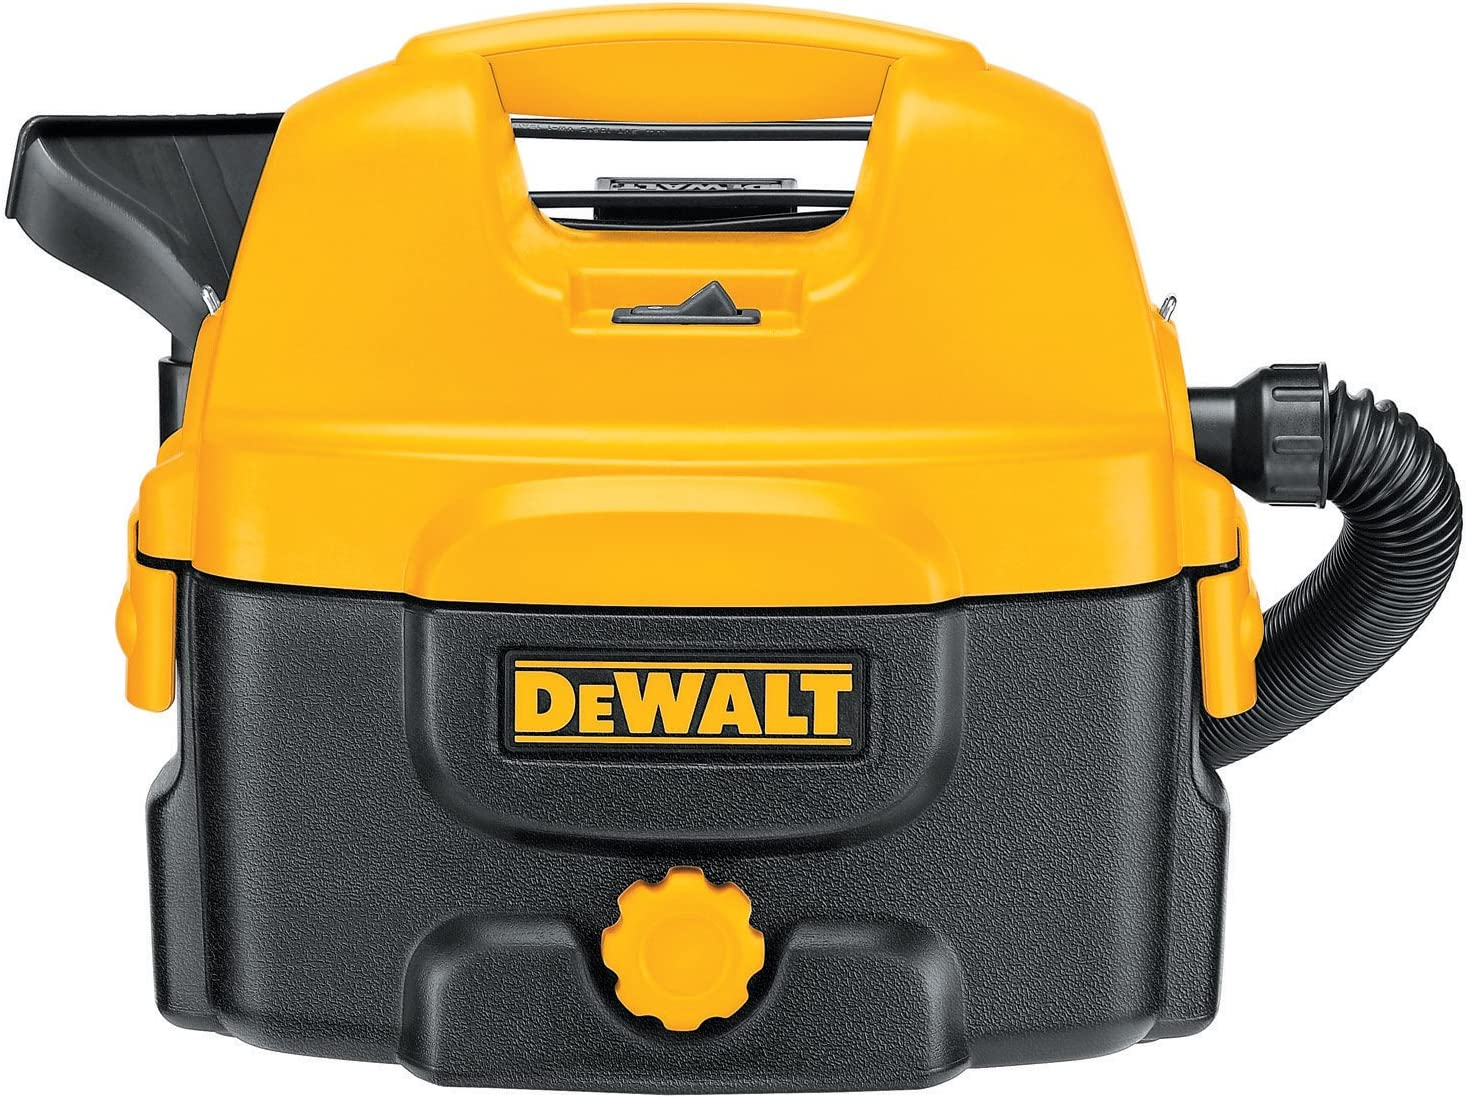 Dewalt Cordless and Corded DC500 Wet Dry Vacuum